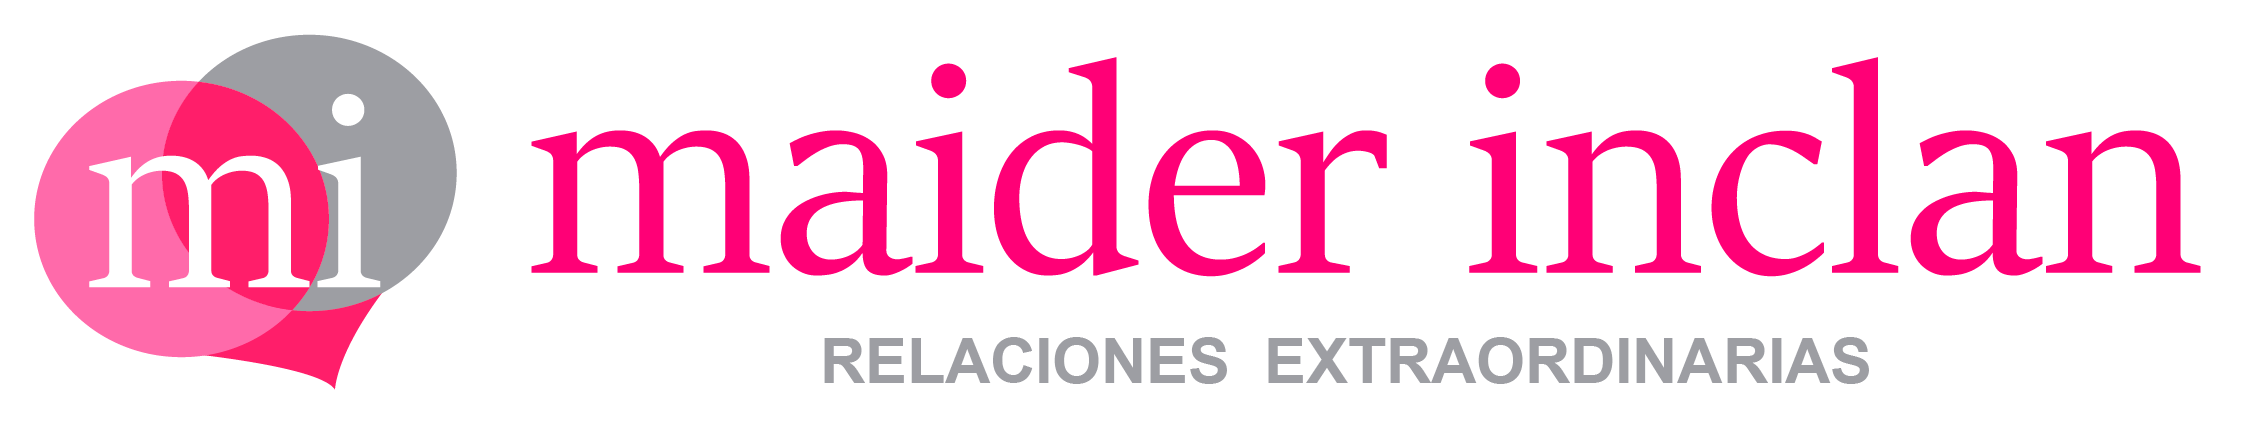 Maider Inclan